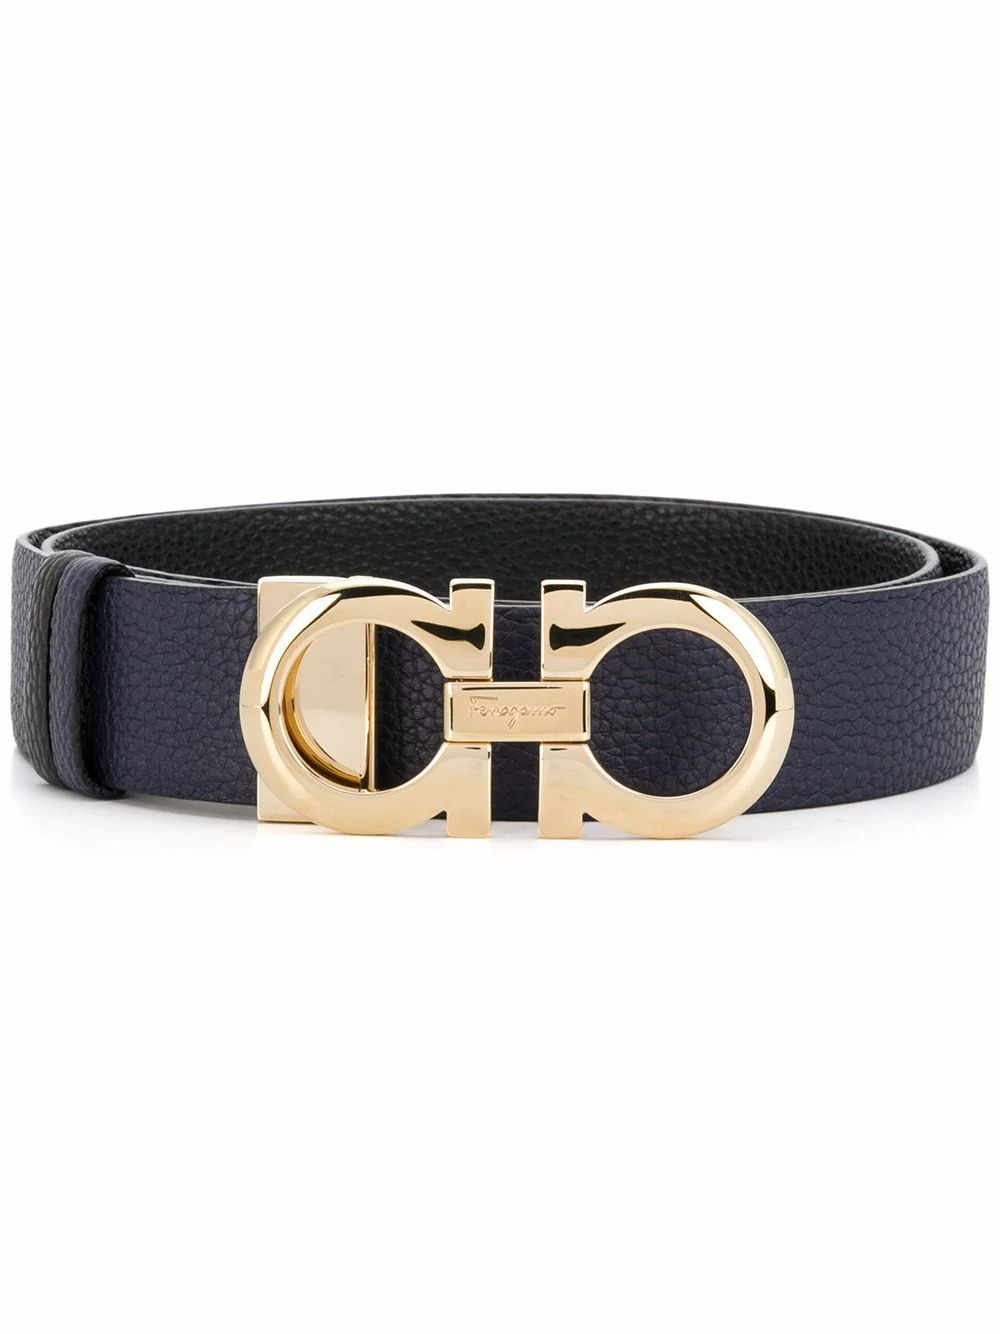 Salvatore Ferragamo SALVATORE FERRAGAMO WOMEN'S BLUE LEATHER BELT